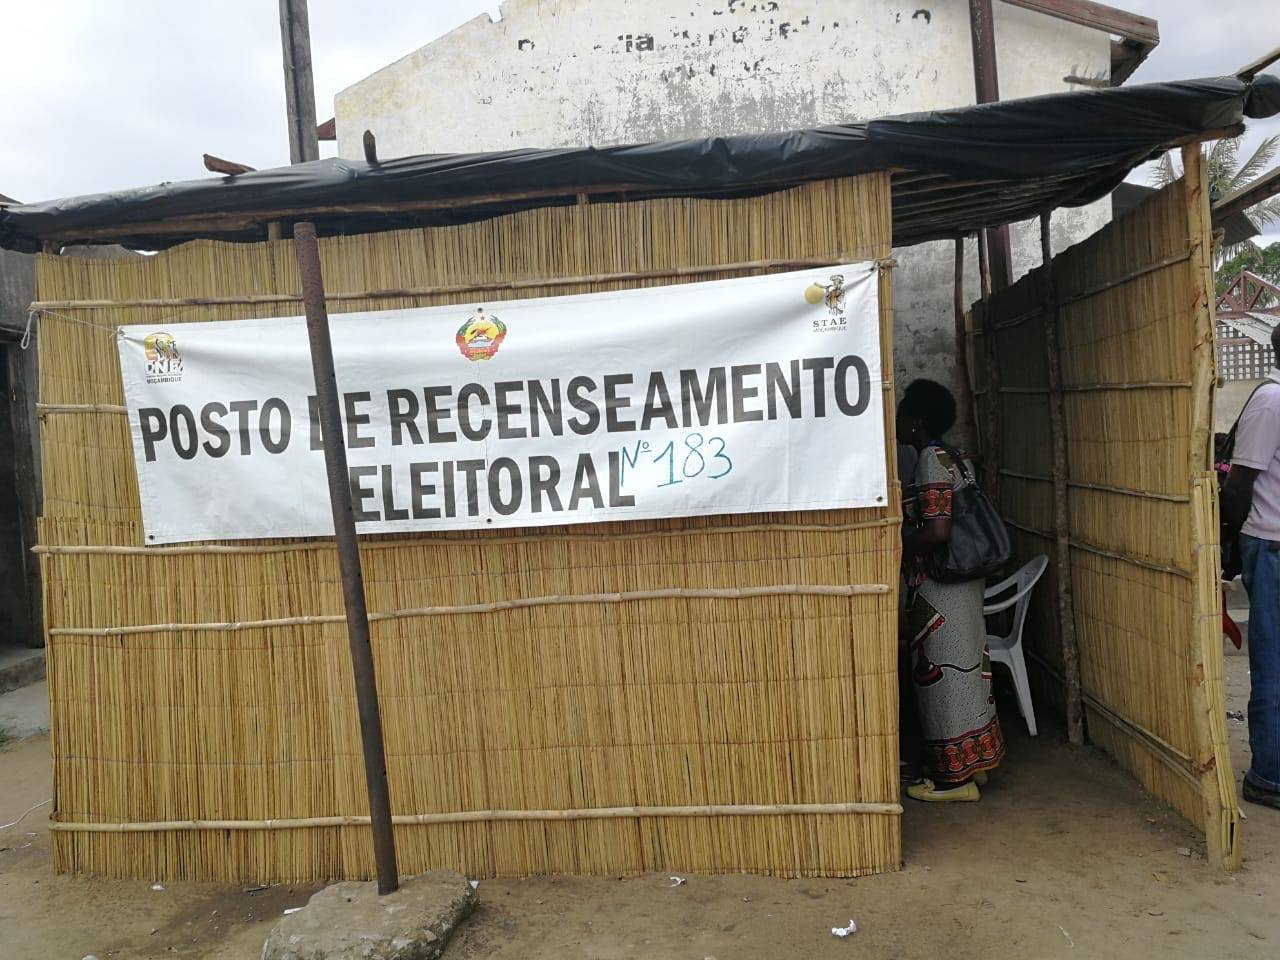 The EU-funded 'Support to Consolidation of Democracy in Mozambique Programme' worked with citizen voter registration officials, who created voter cards in rural conditions. Photo credit: International IDEA